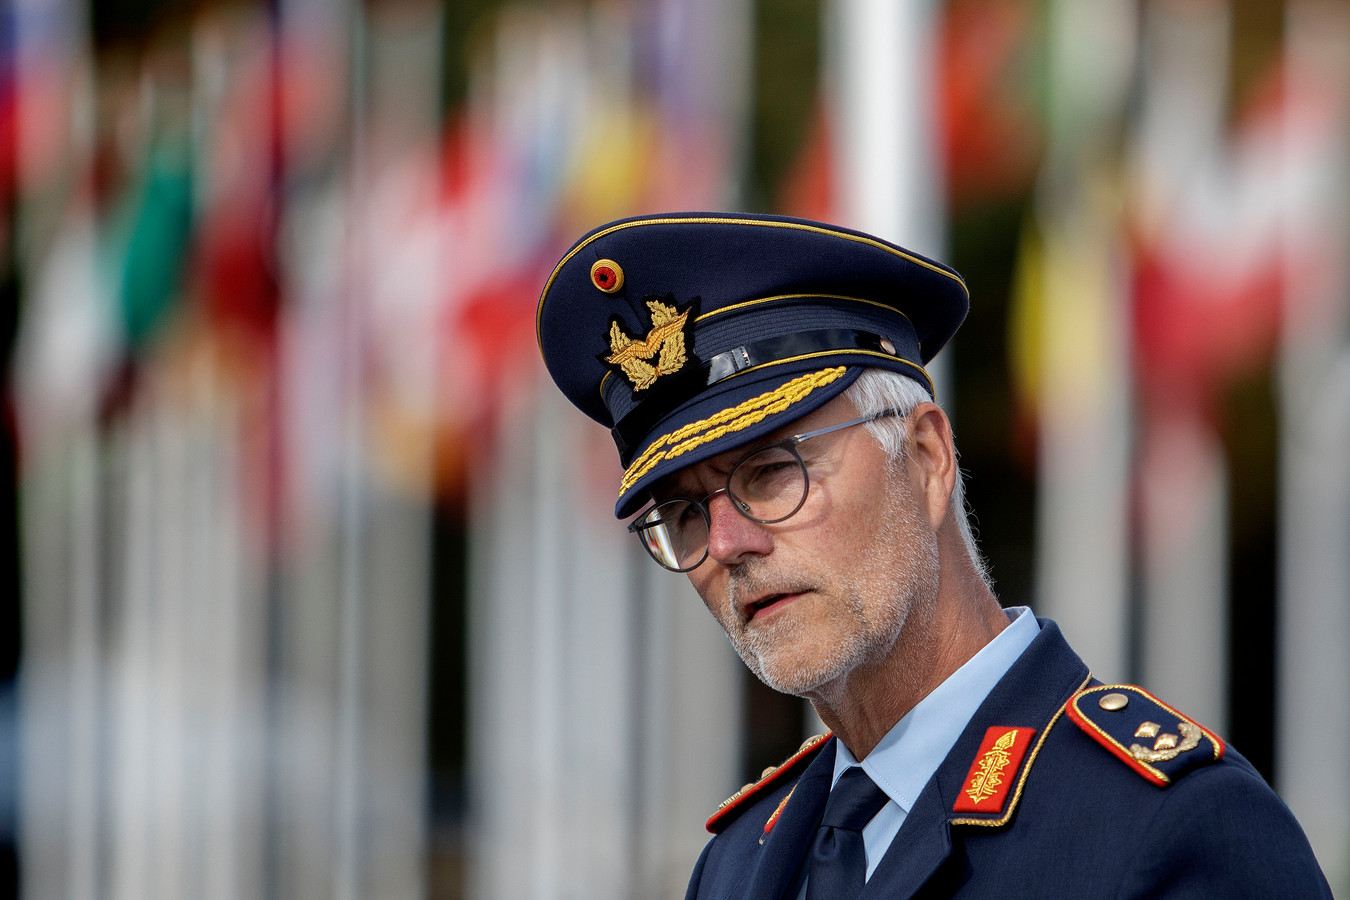 Generaal-majoor Andreas Schick, de nieuwe commandant van het European Air Transport Command (EATC).